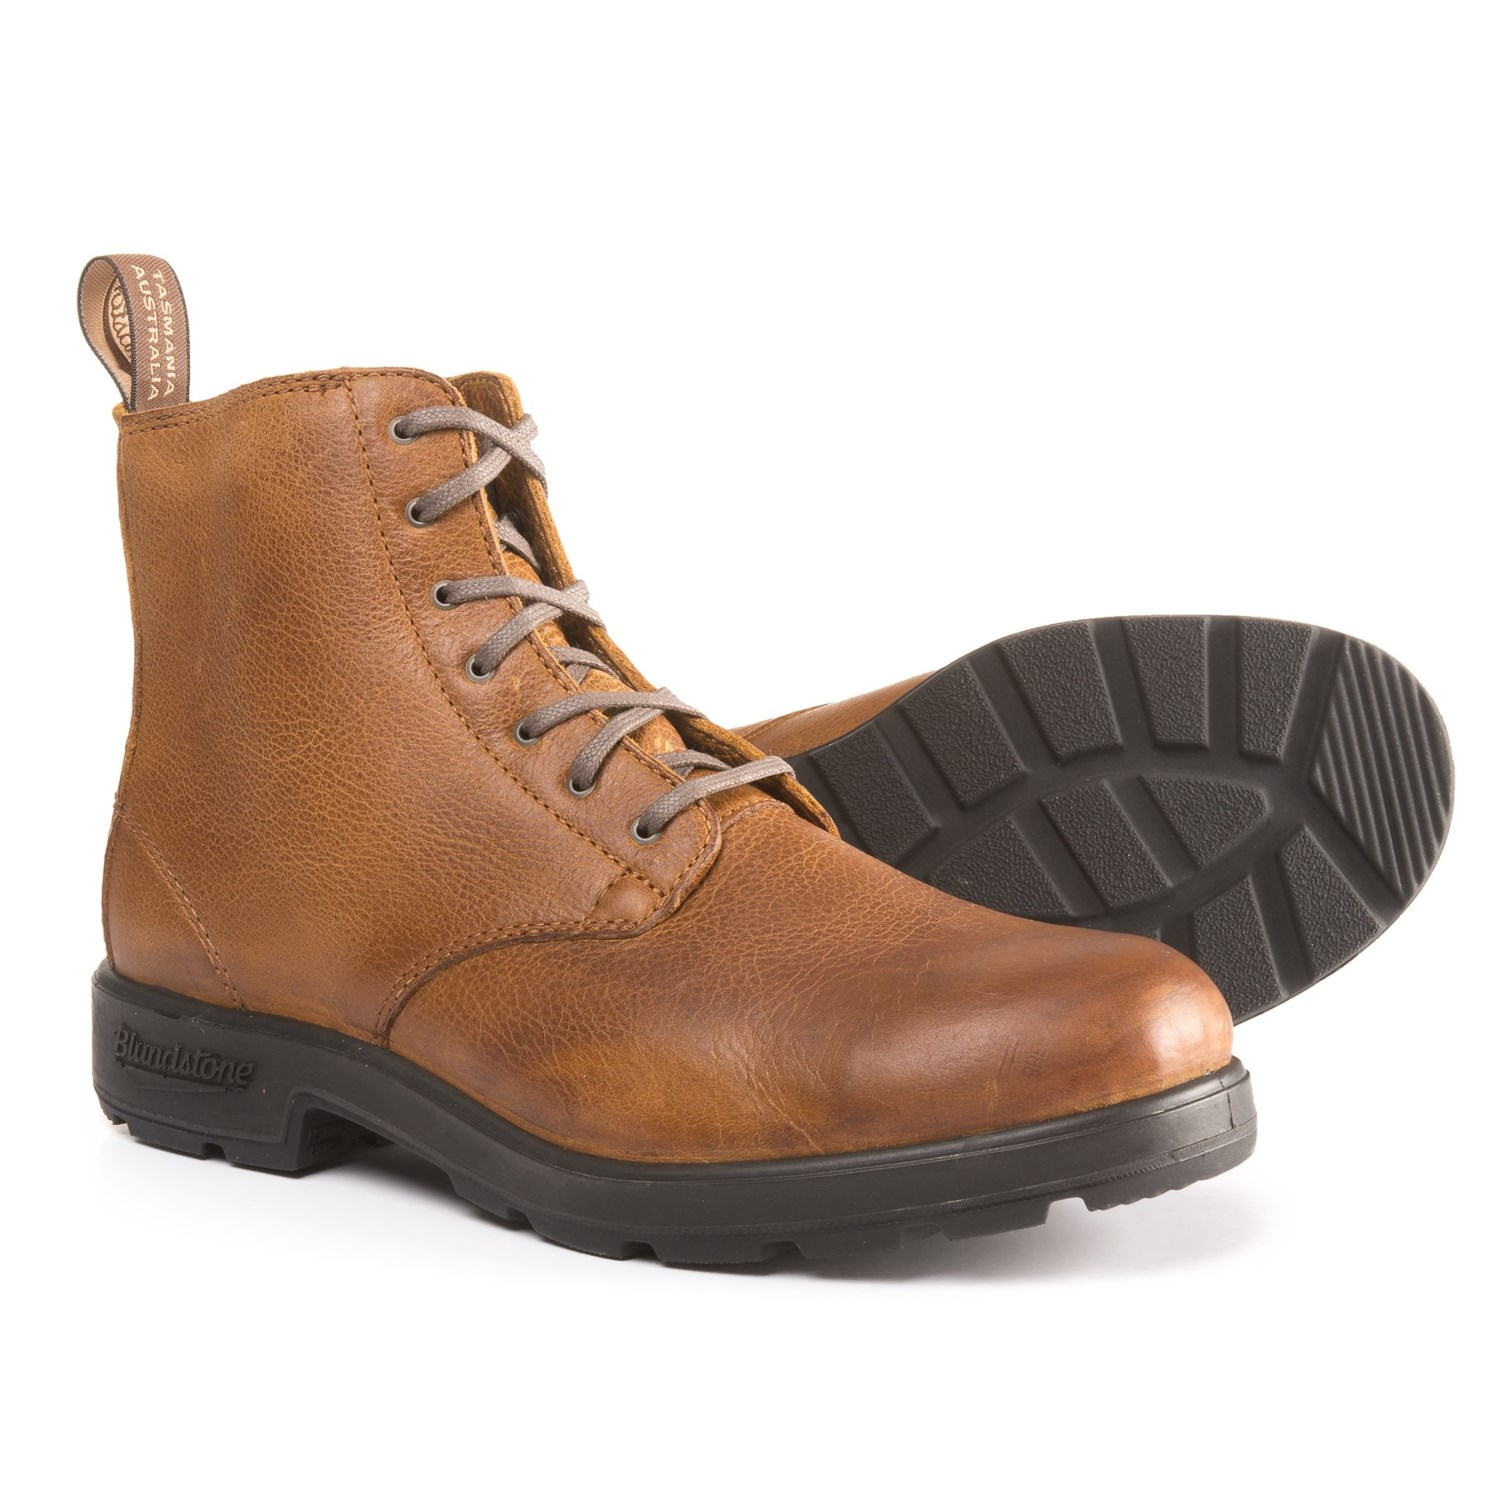 Blundstone Lace-Up Boots – Leather